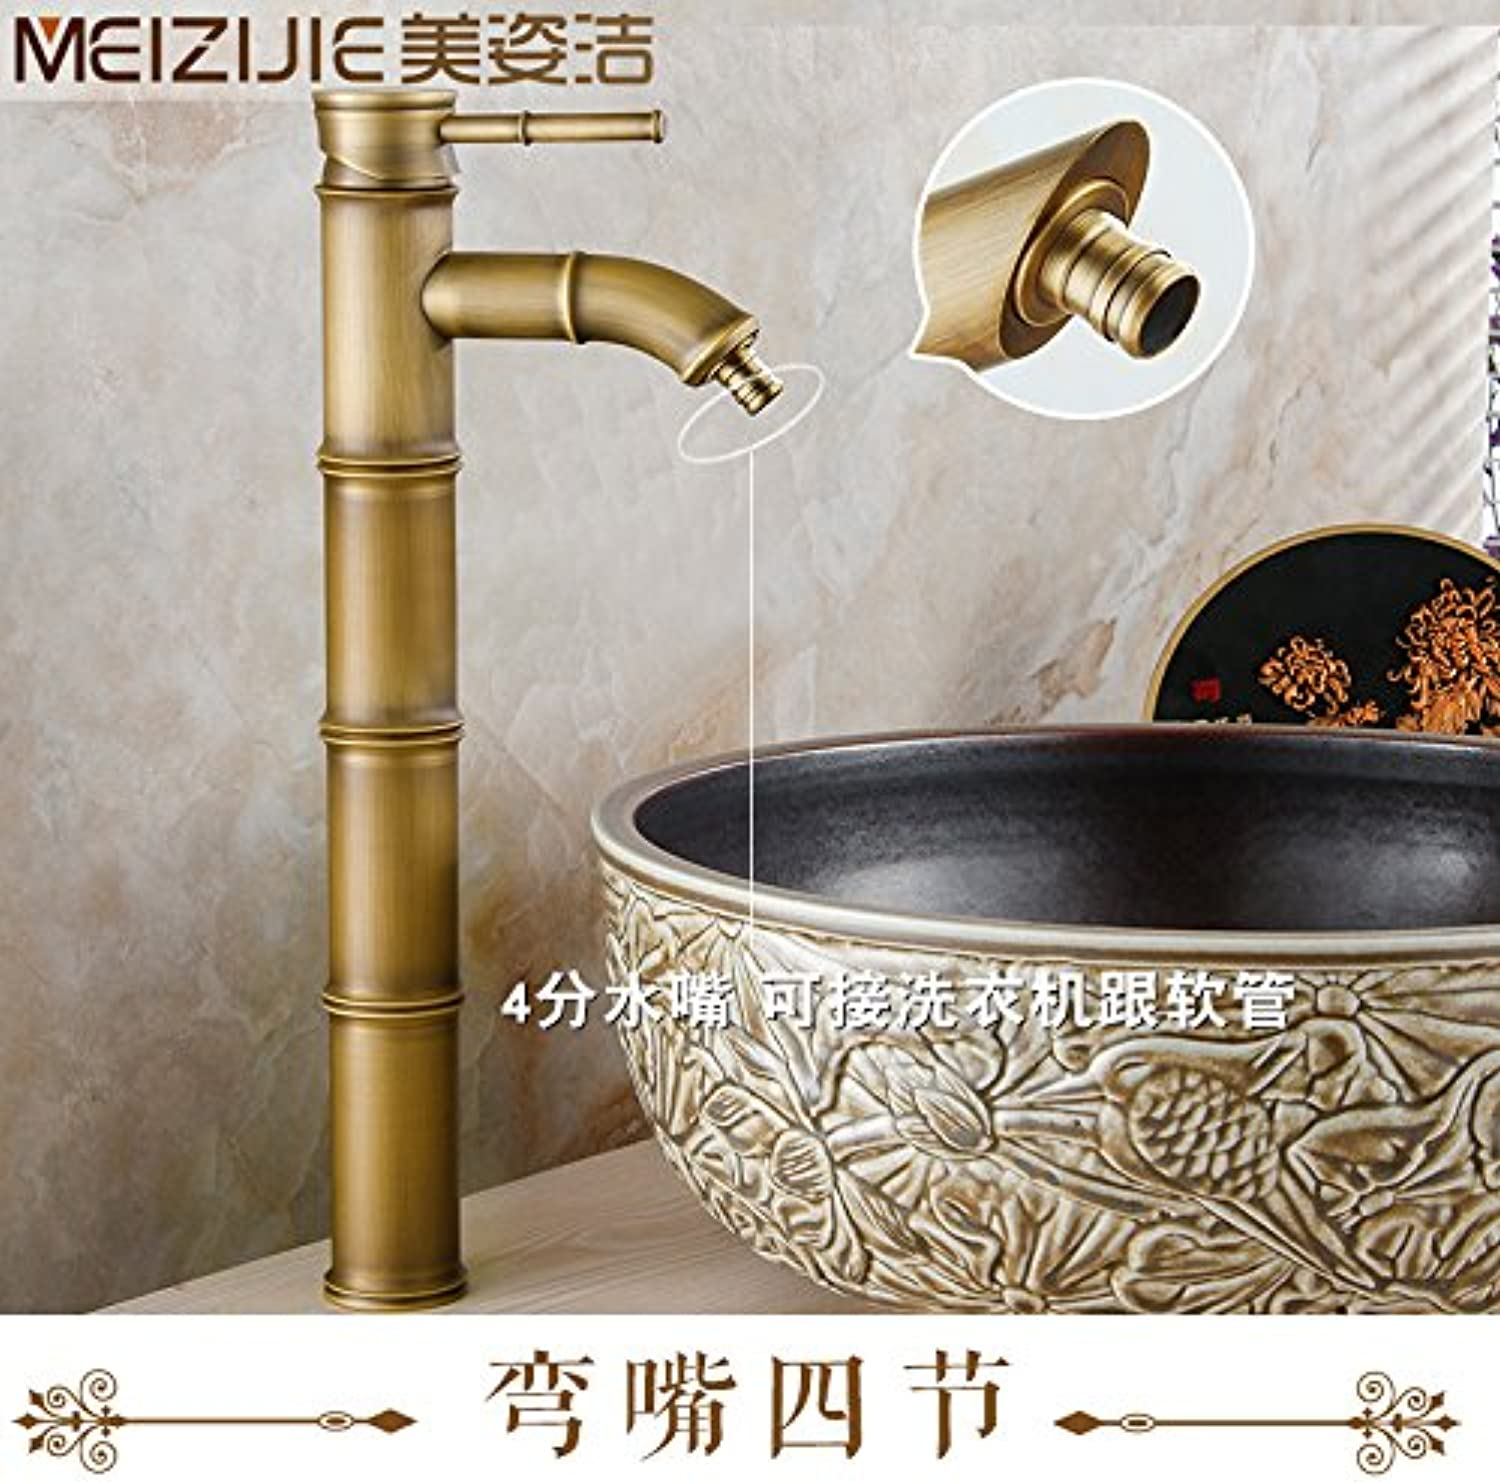 Hlluya Professional Sink Mixer Tap Kitchen Faucet Antique basin faucet antique solid brass basin faucet basin bamboo and cold water faucet,H Section 4 Washer Nozzle